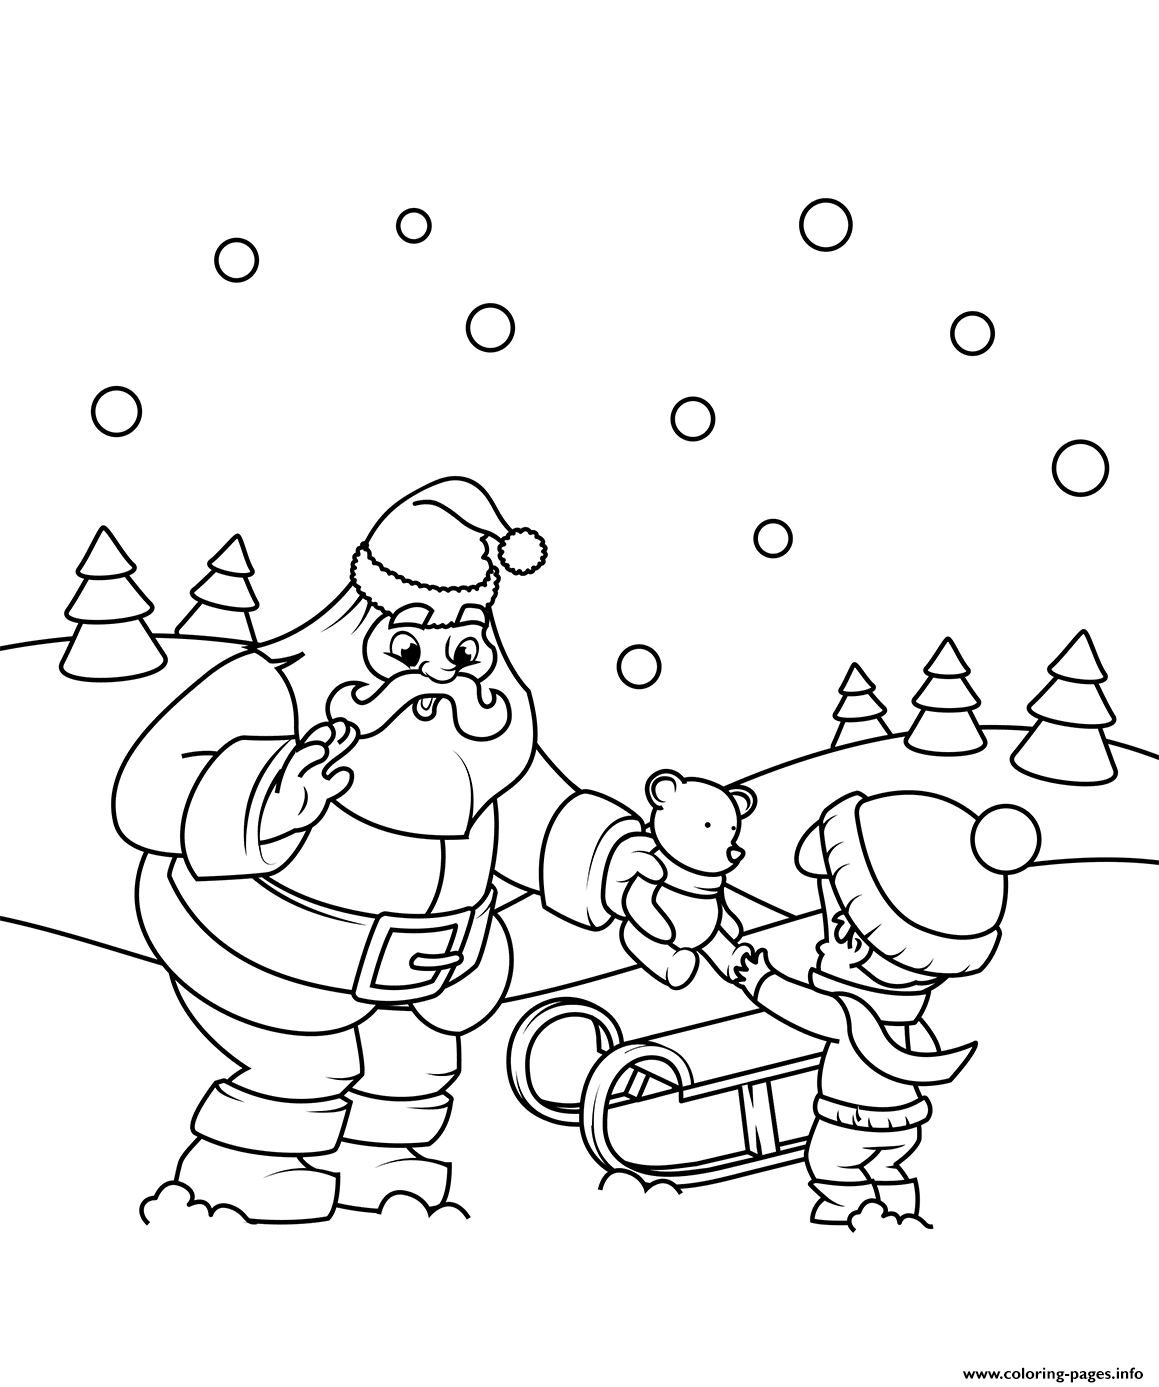 Santa Gives A T To A Boy Christmas Coloring Pages Printable